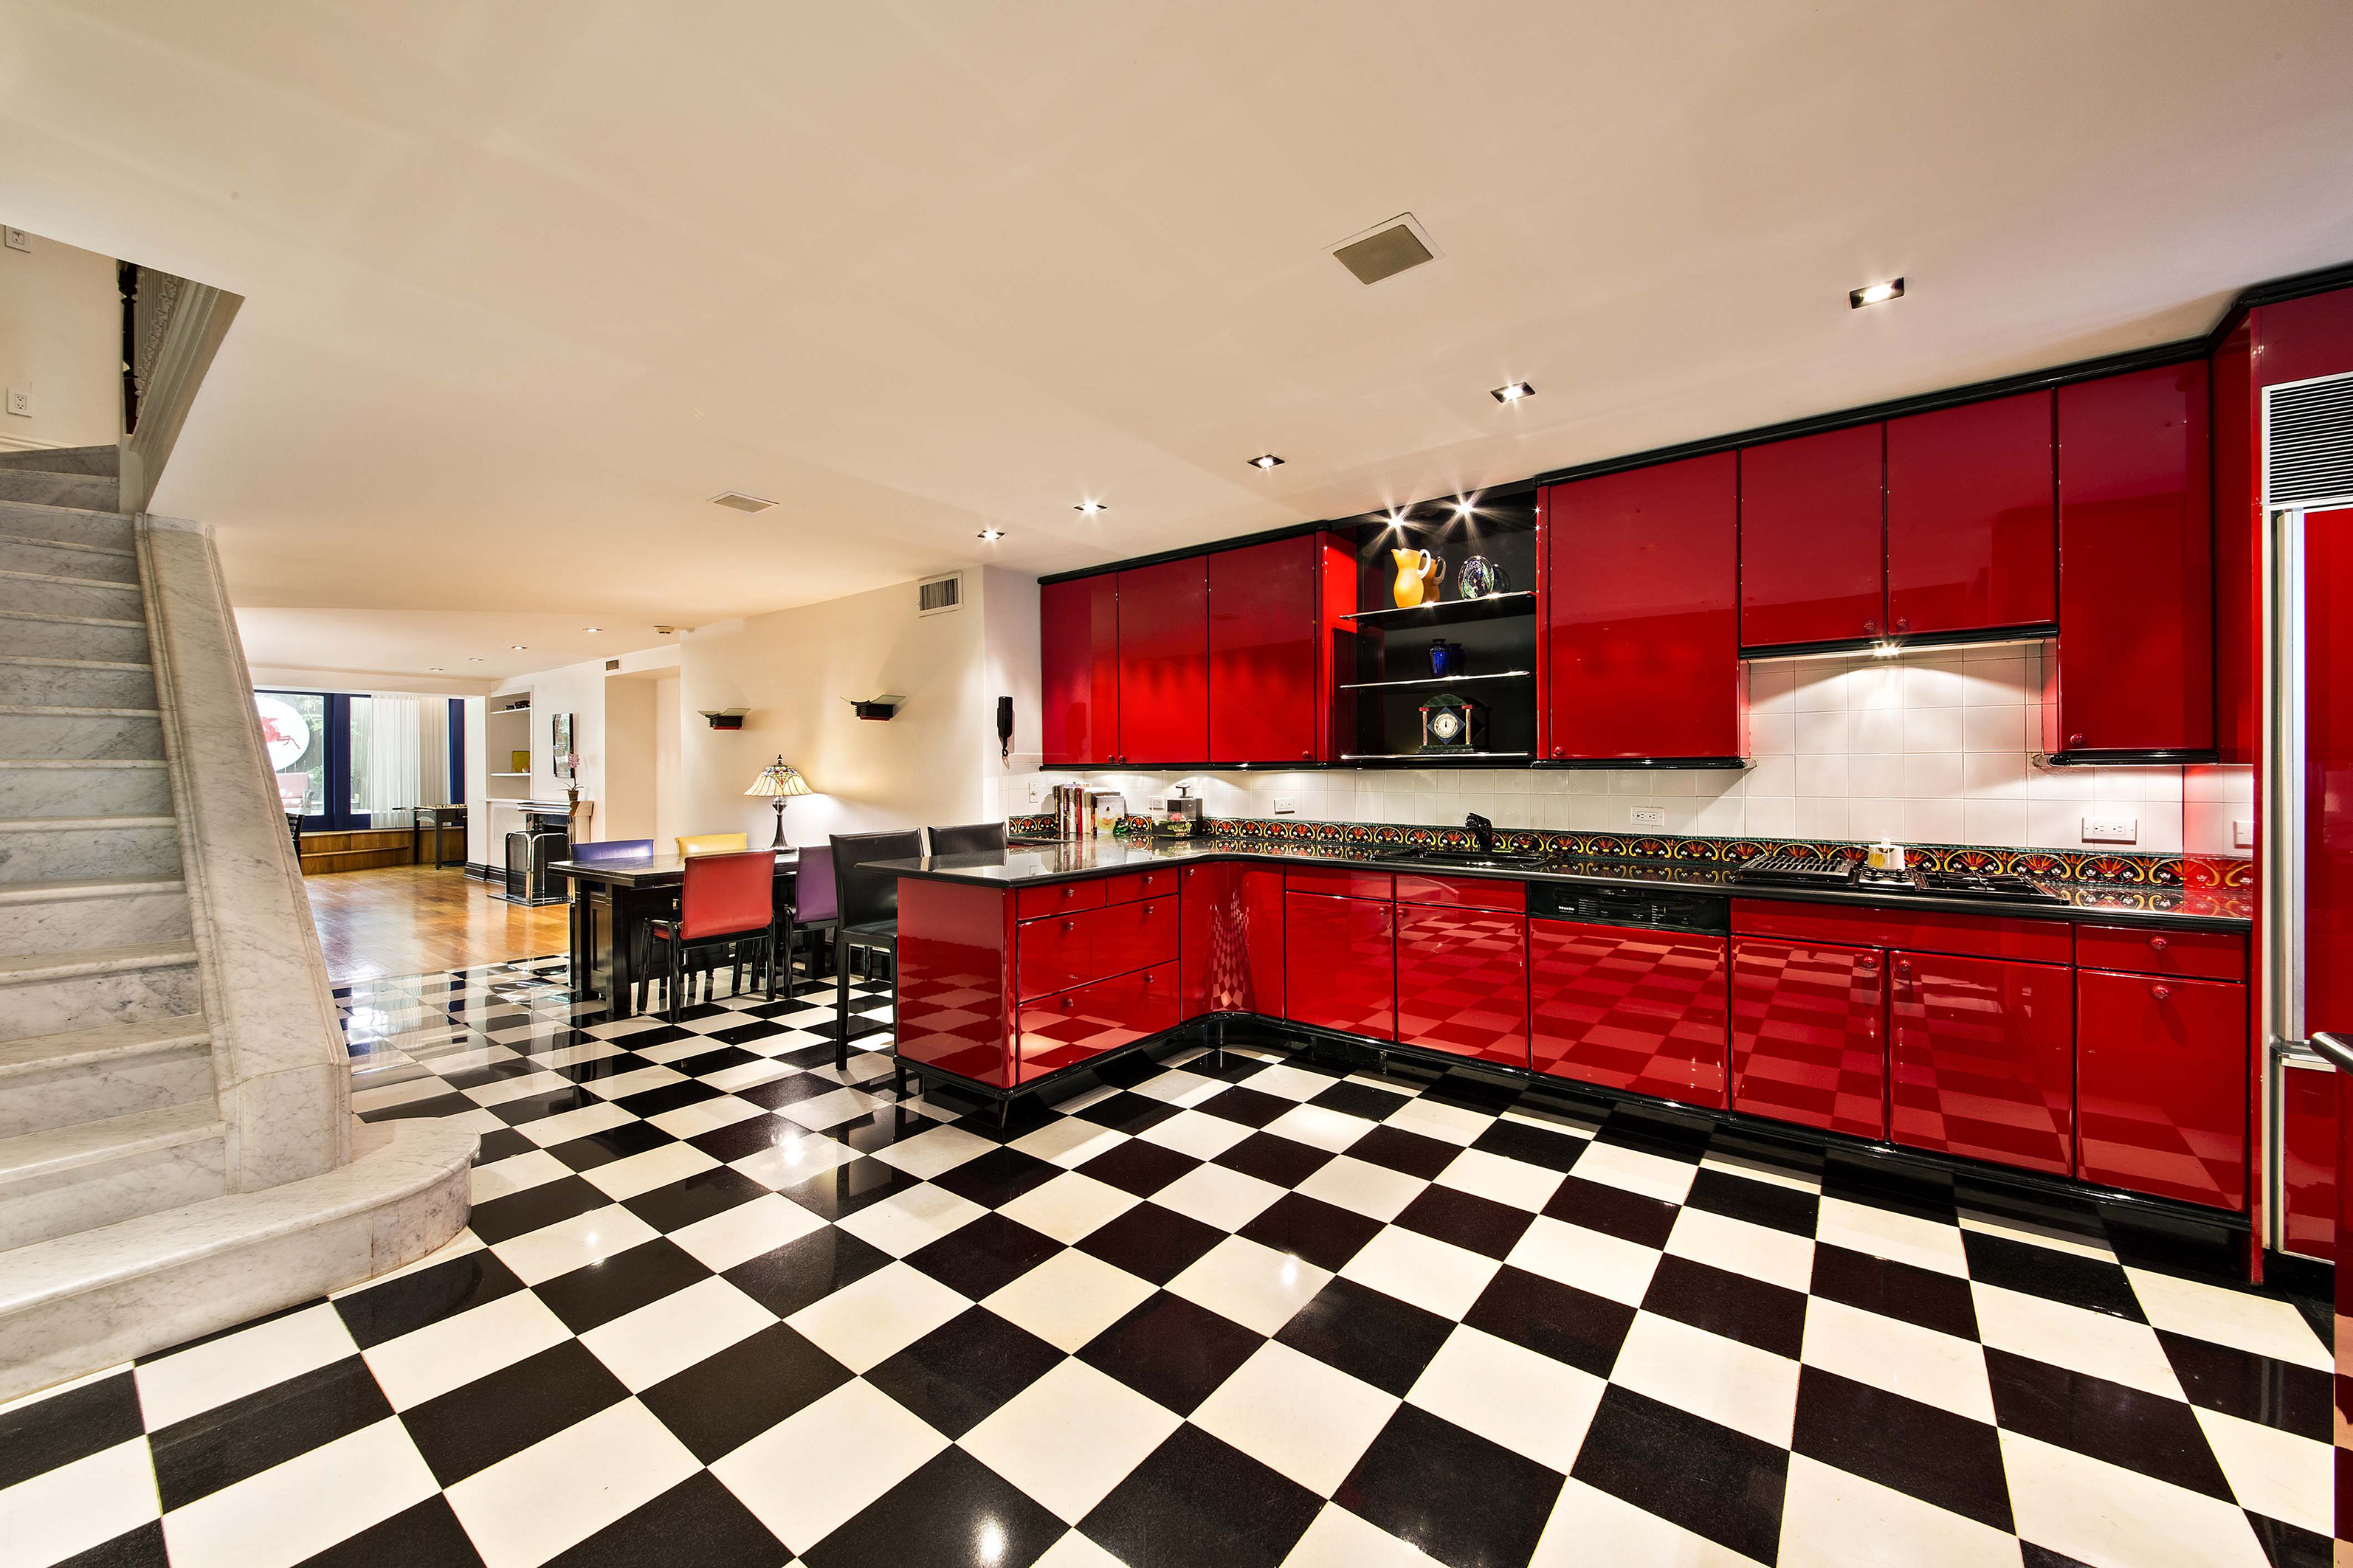 Marilyn Monroe's Upper East Side Apartment Available To